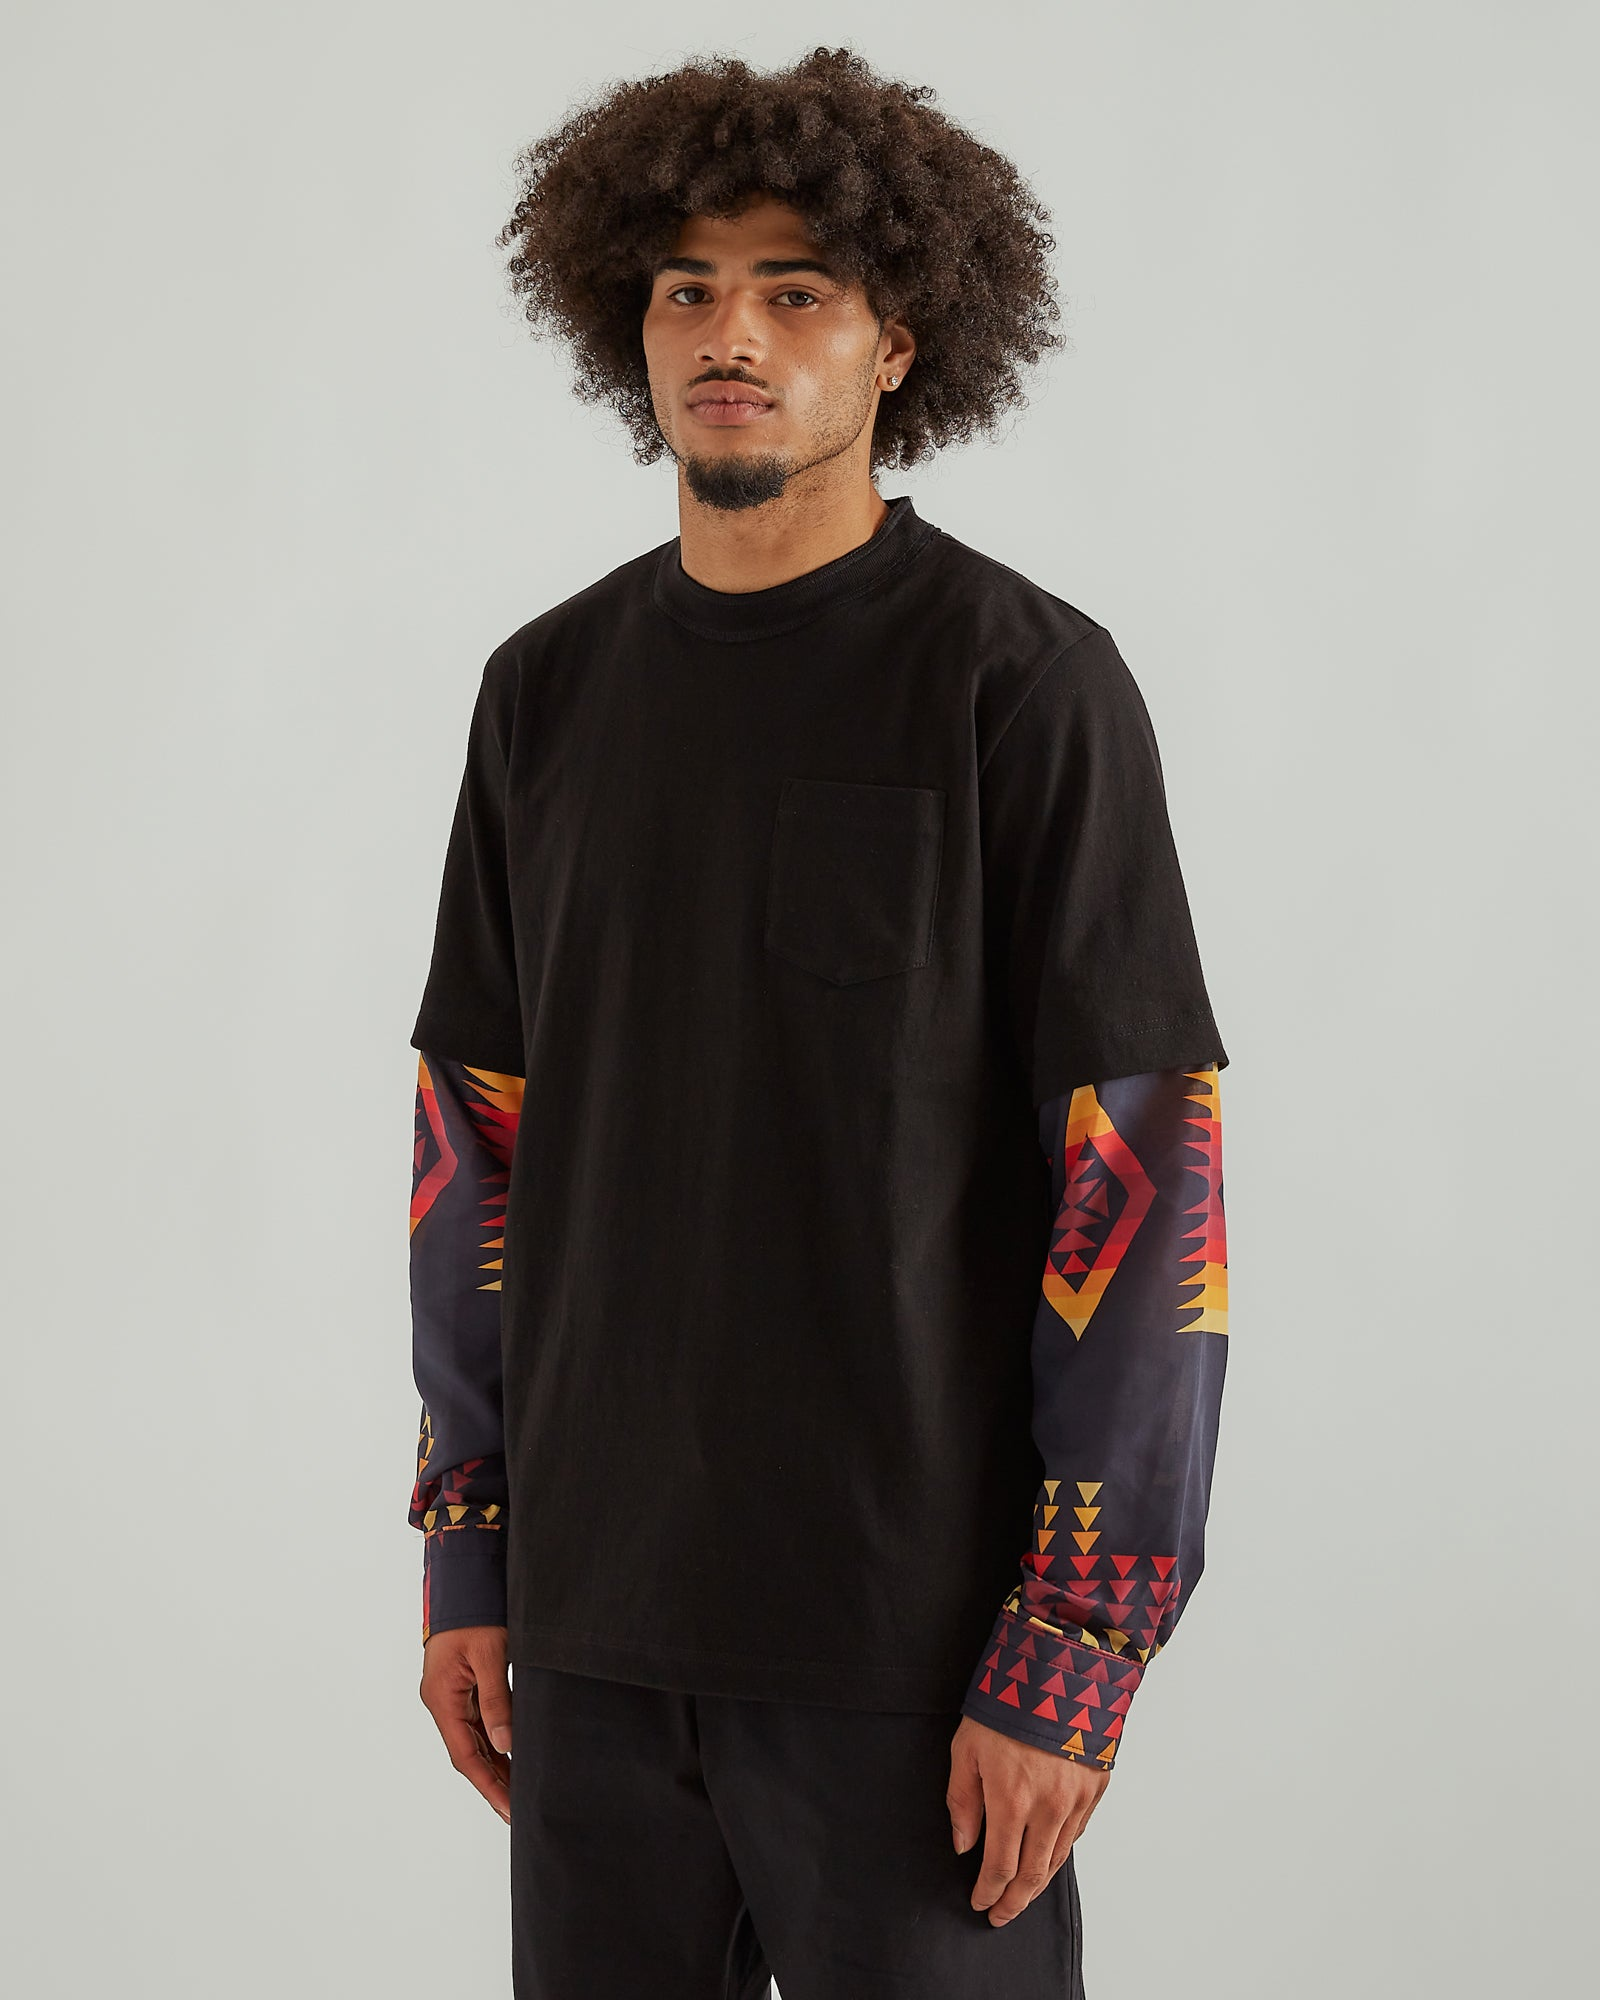 Archive Print L/S T-Shirt in Black/Orange